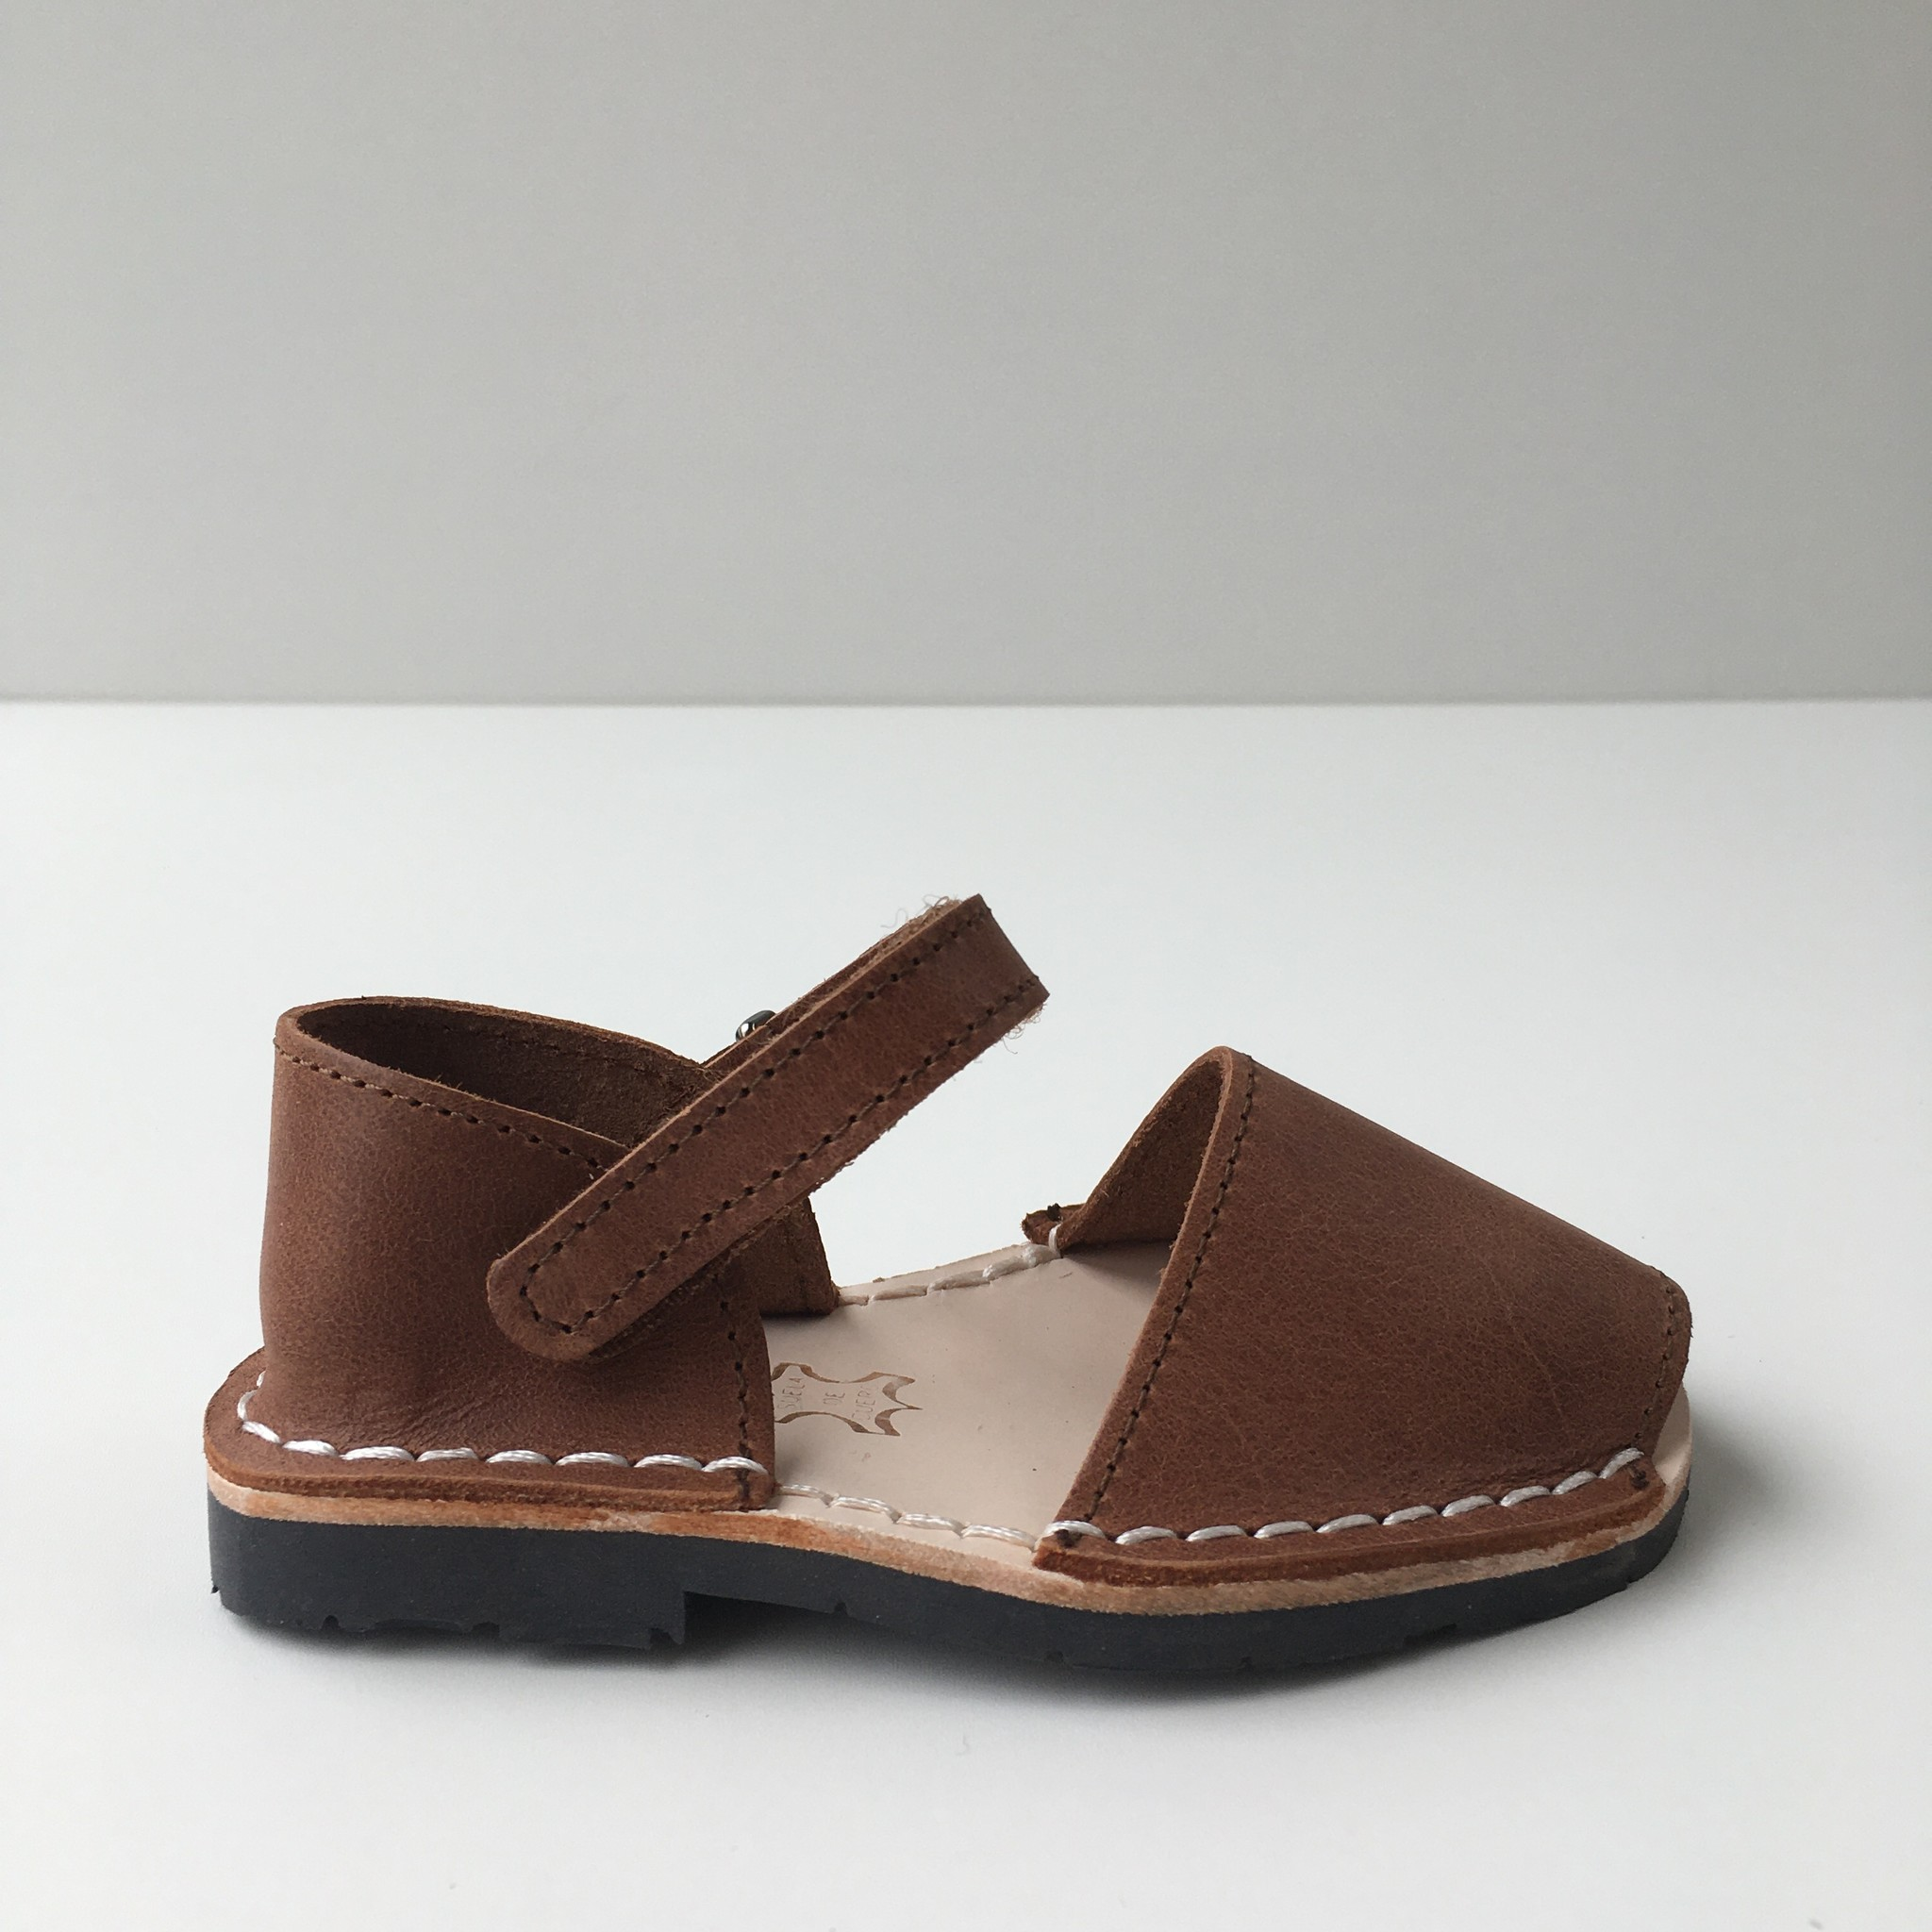 Pons  leather avarca sandal child BOSQUE - brown - 22 to 25